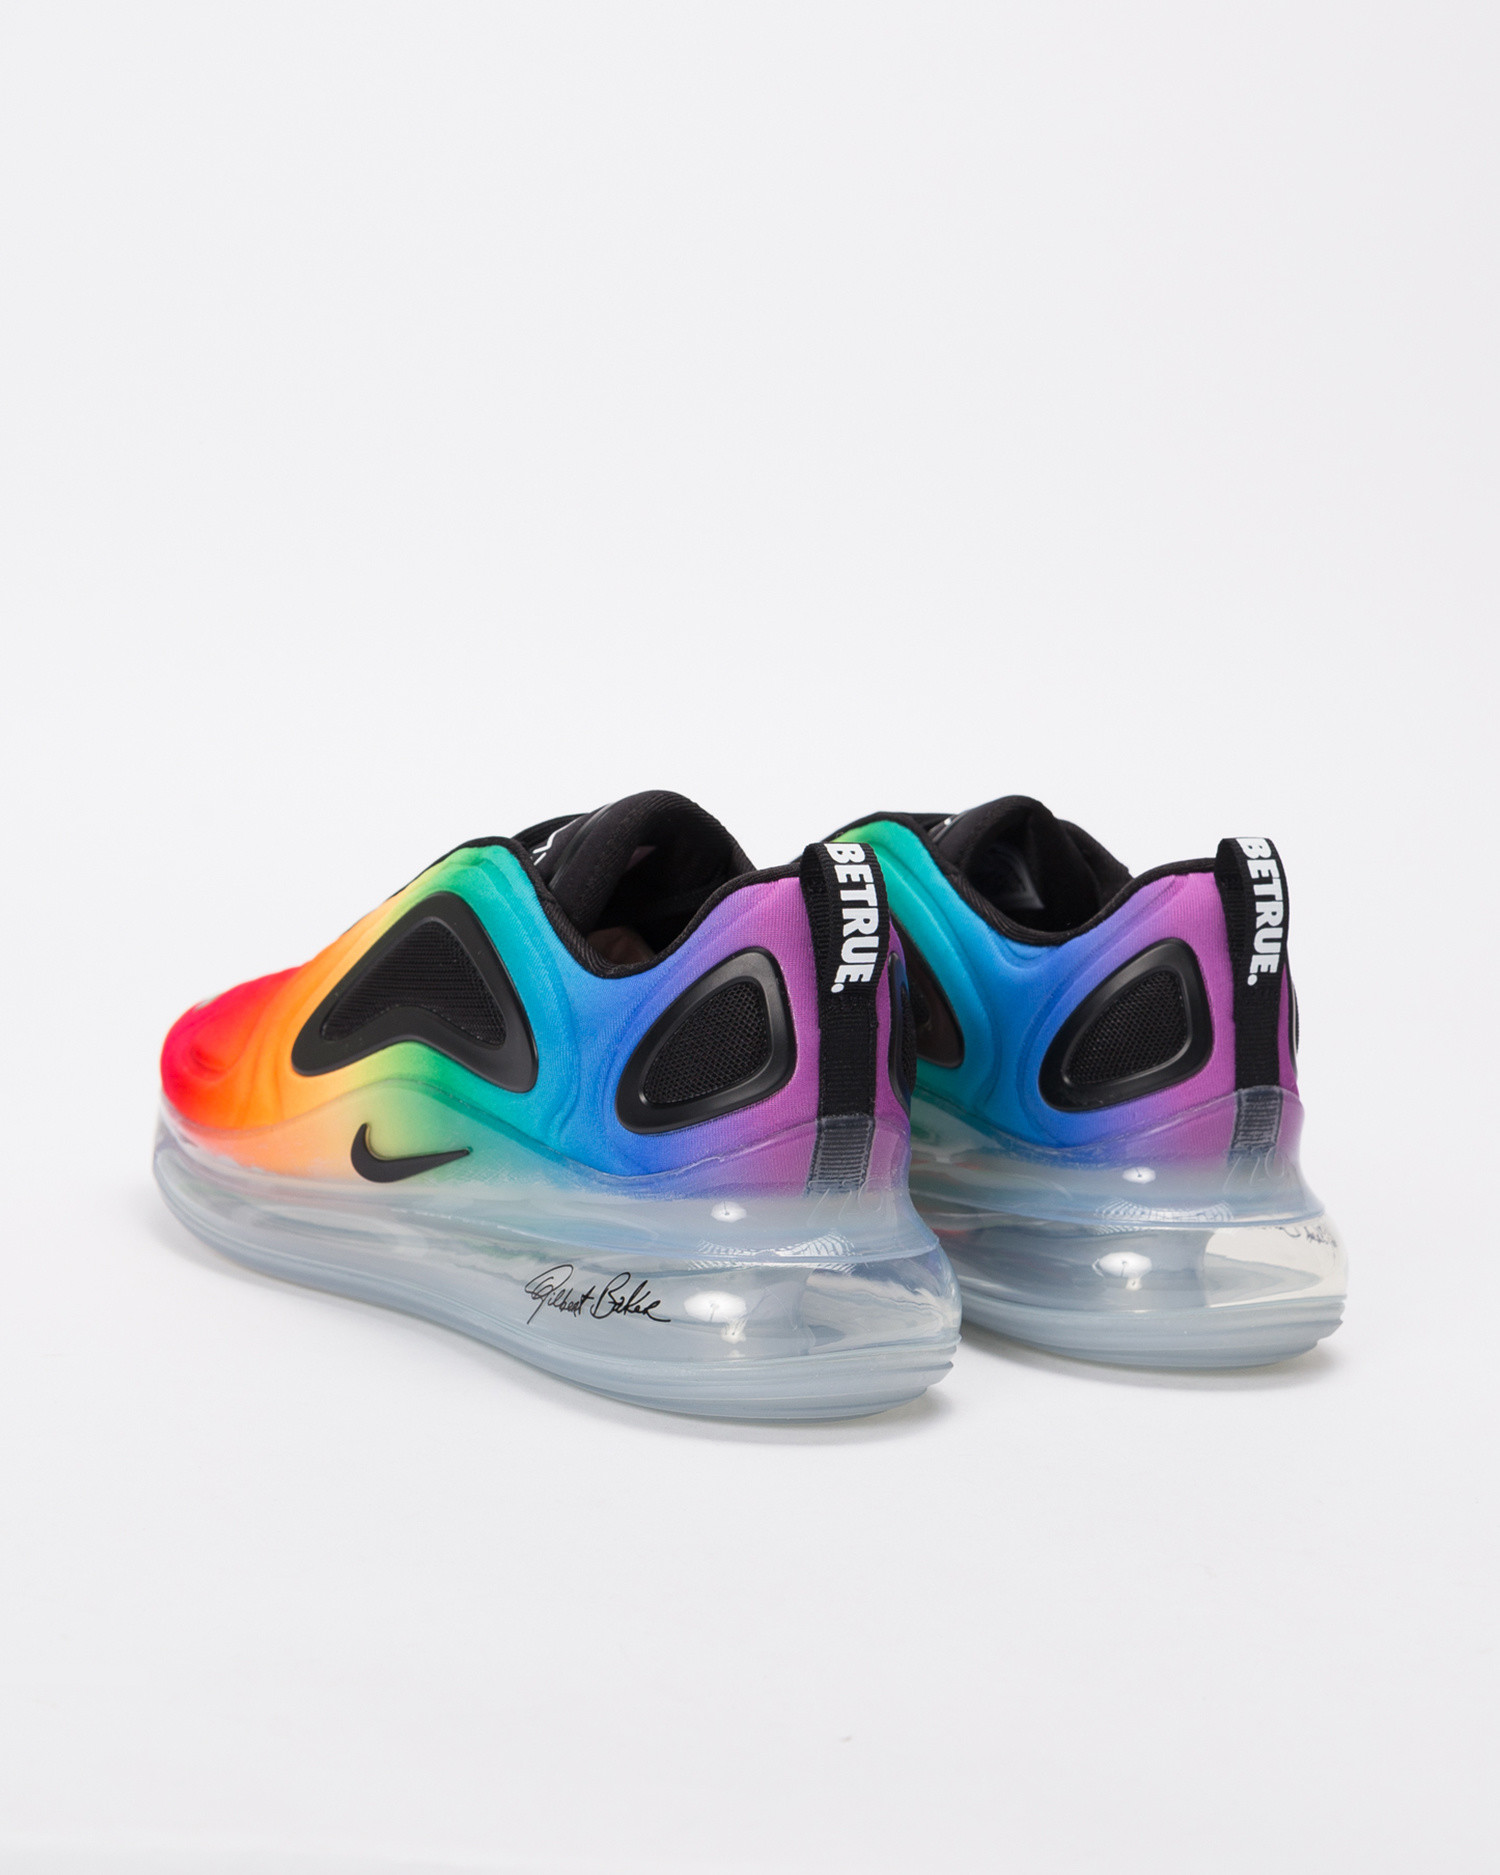 Nike Air Max 720 BETRUE Multi ColorBlack White